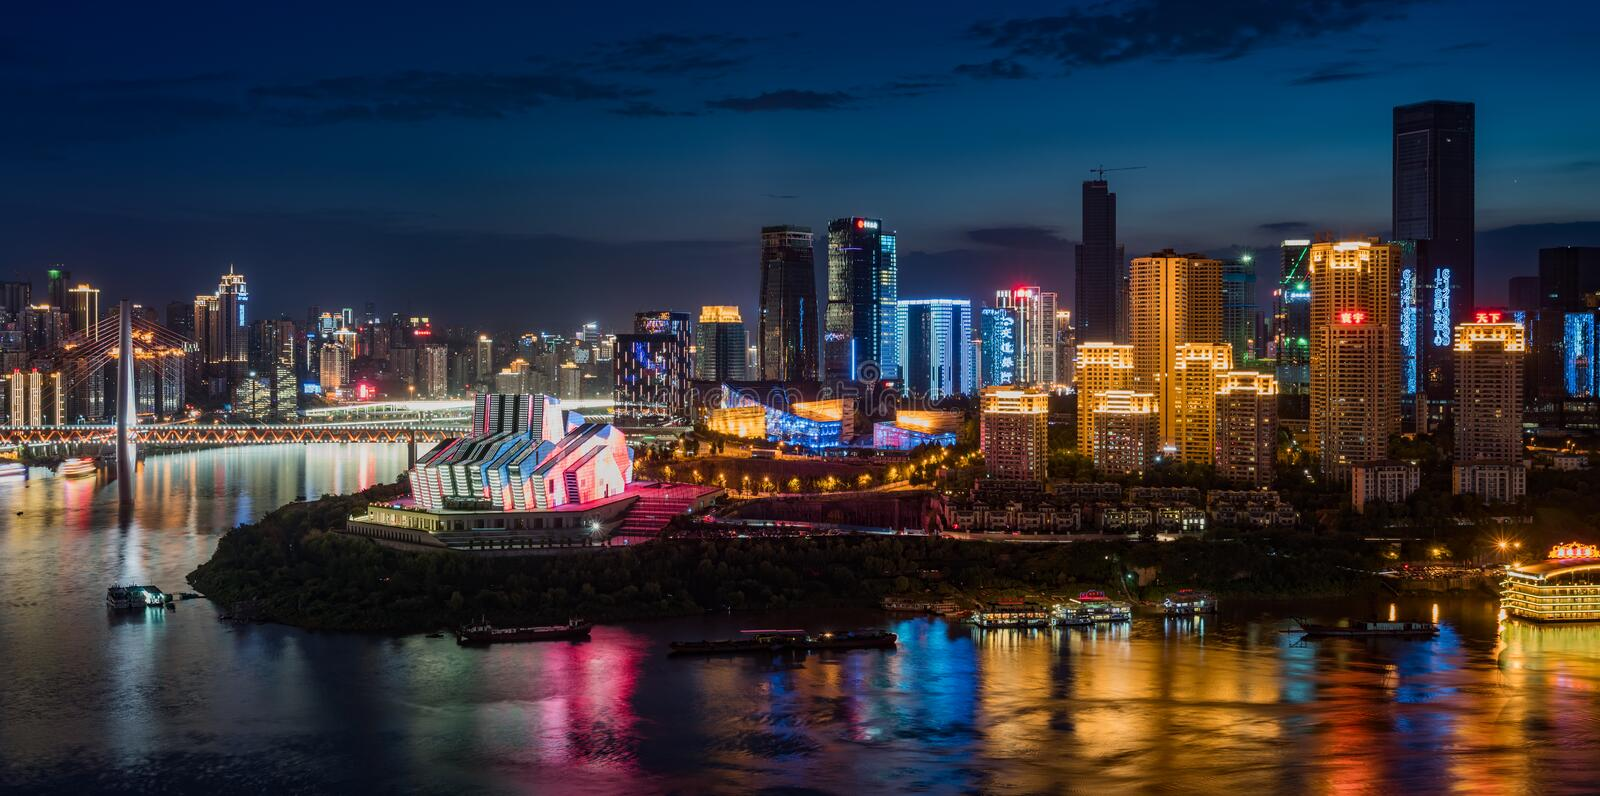 Chongqing City Night Light. Over jialing river with boat and skyscraper and colorful reflections stock images